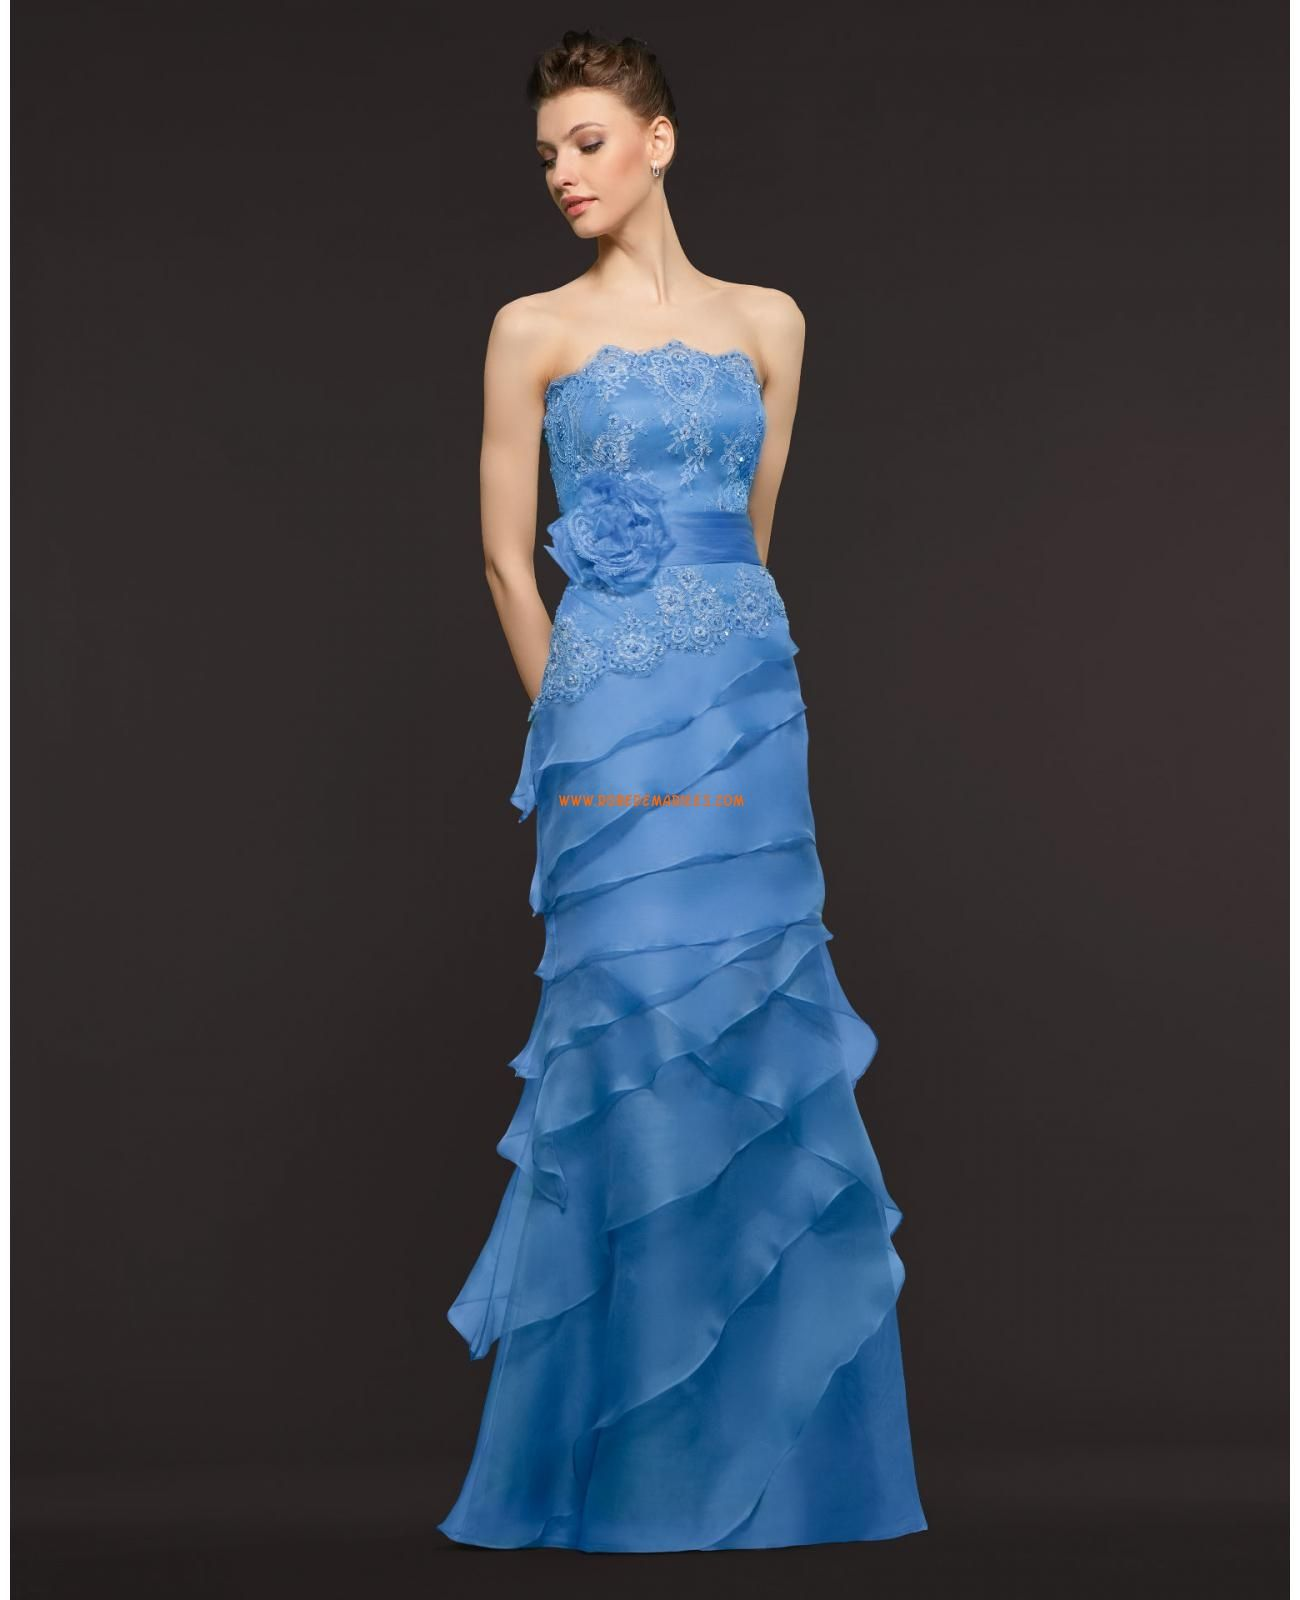 Modele de robe de cocktail 2014